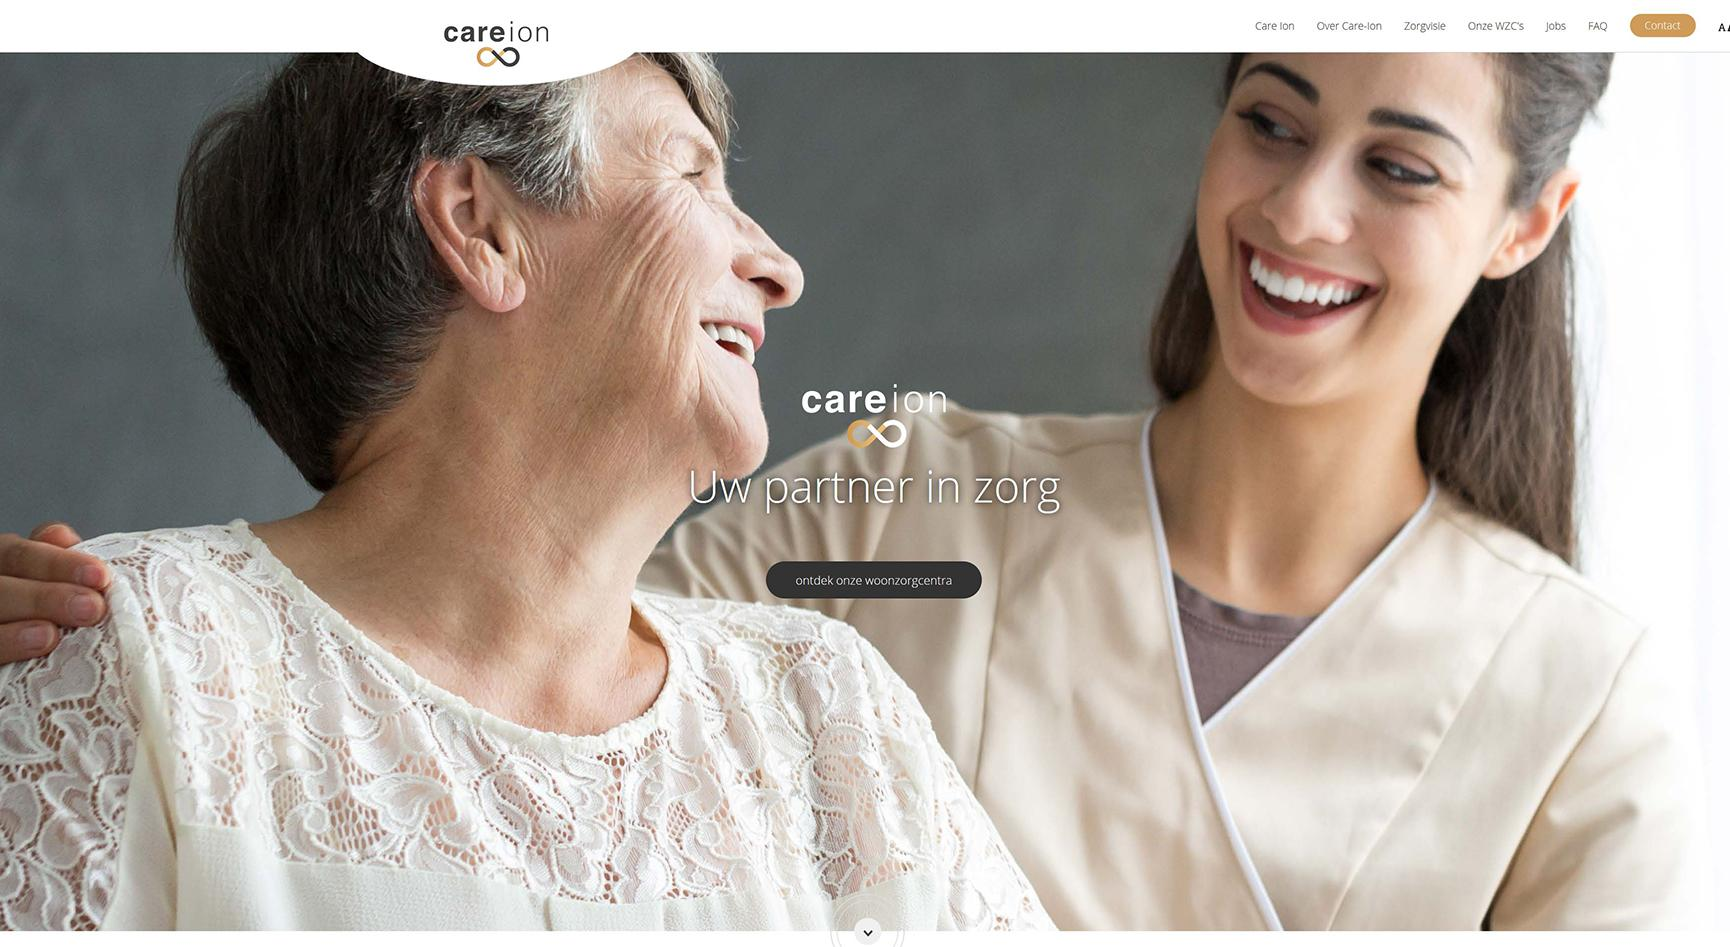 Care ion website by faromedia